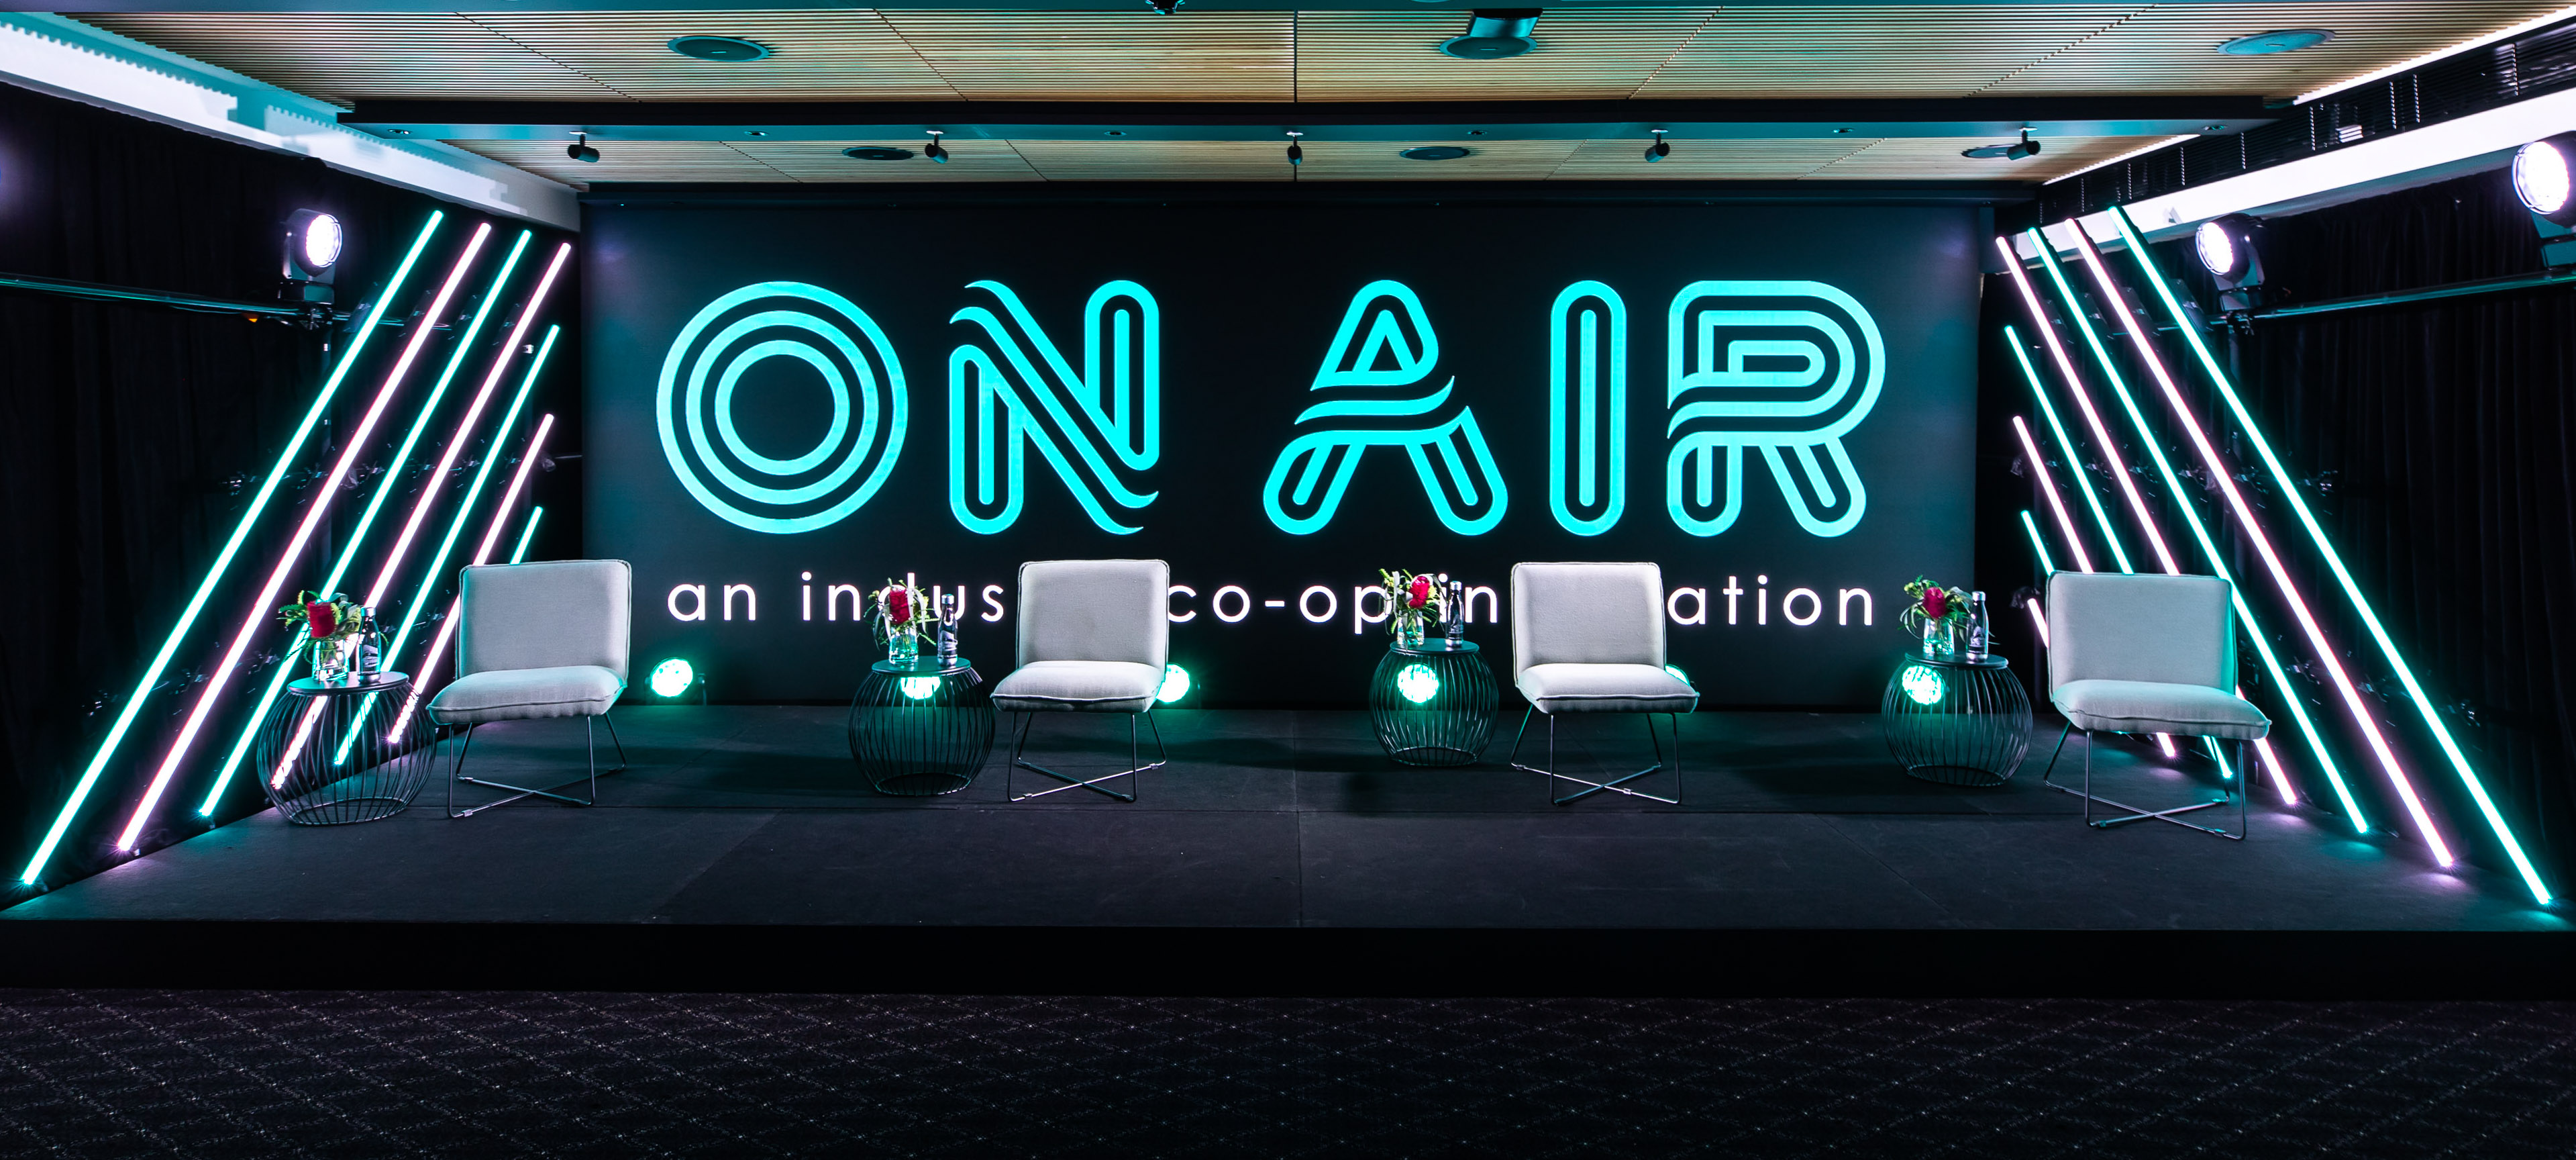 ON AIR is a state of the art semi-permanent studio located in the heart of Sydney's CBD